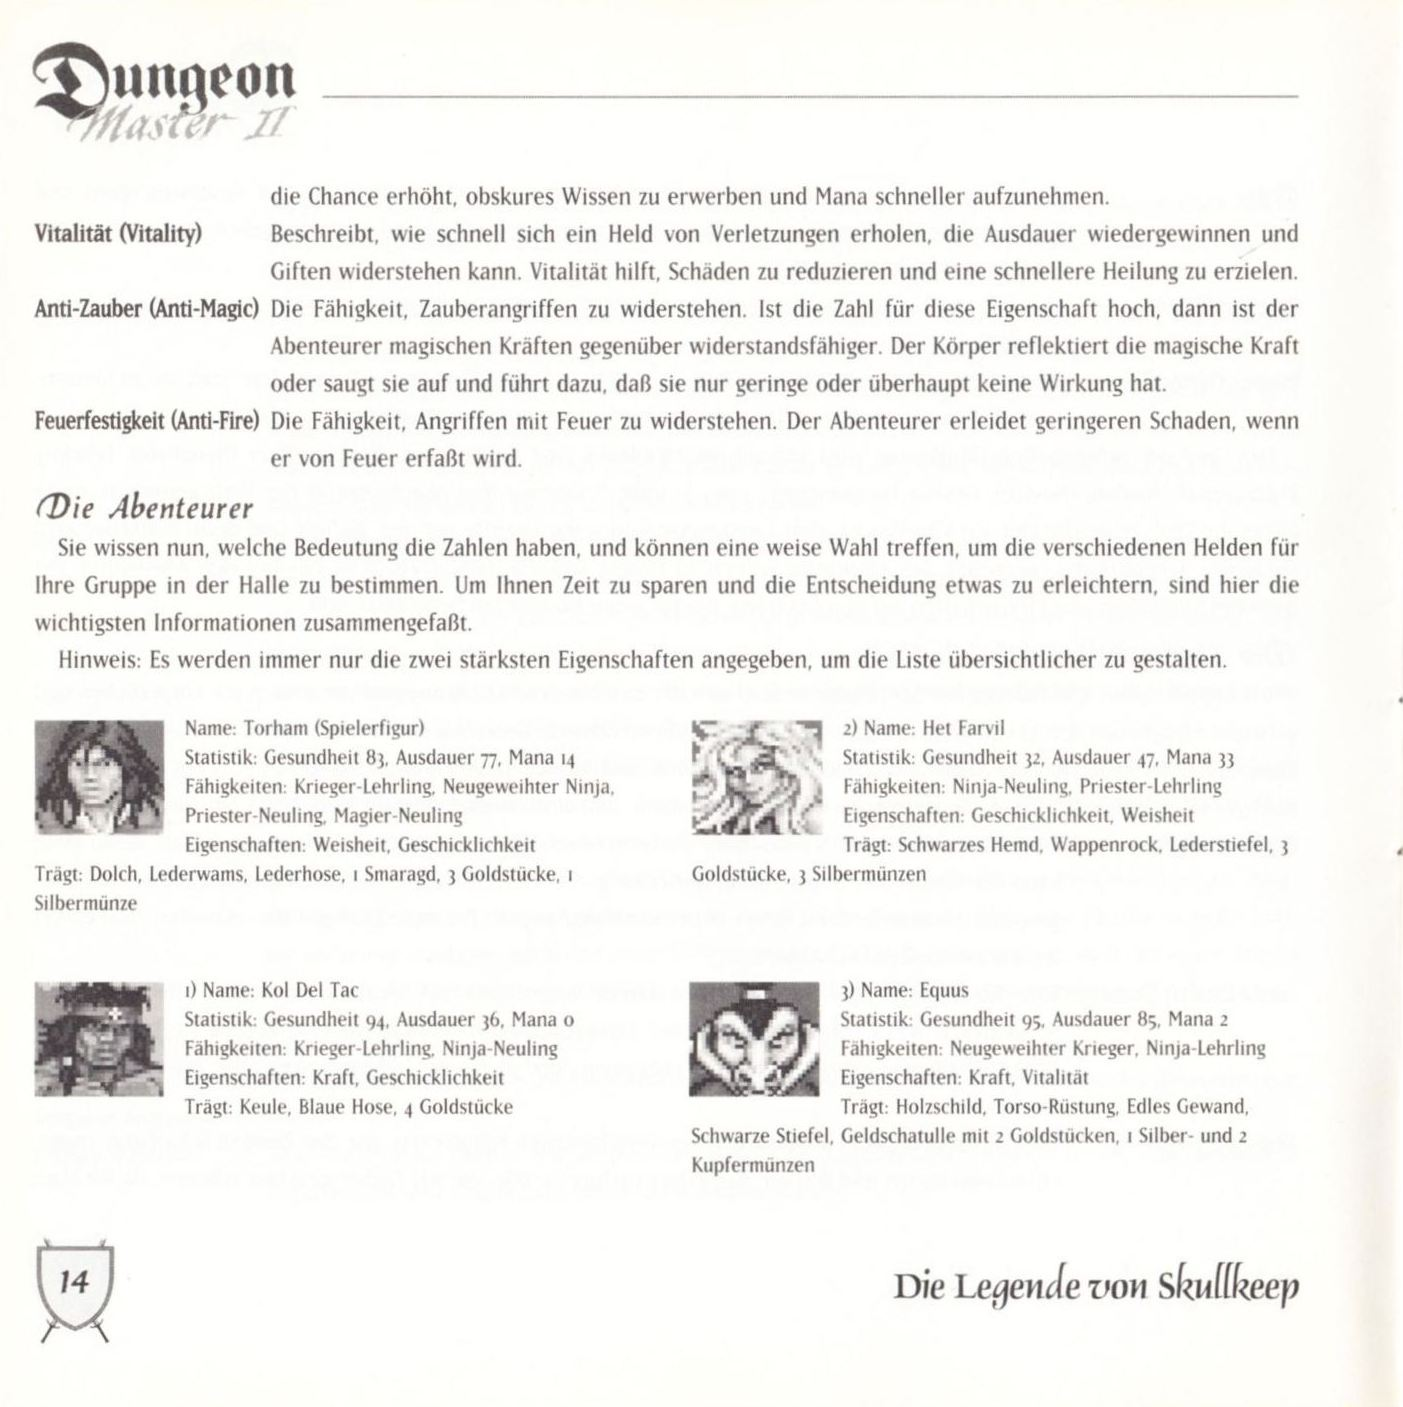 Game - Dungeon Master II - DE - PC - Blackmarket With Booklet - Booklet - Page 016 - Scan